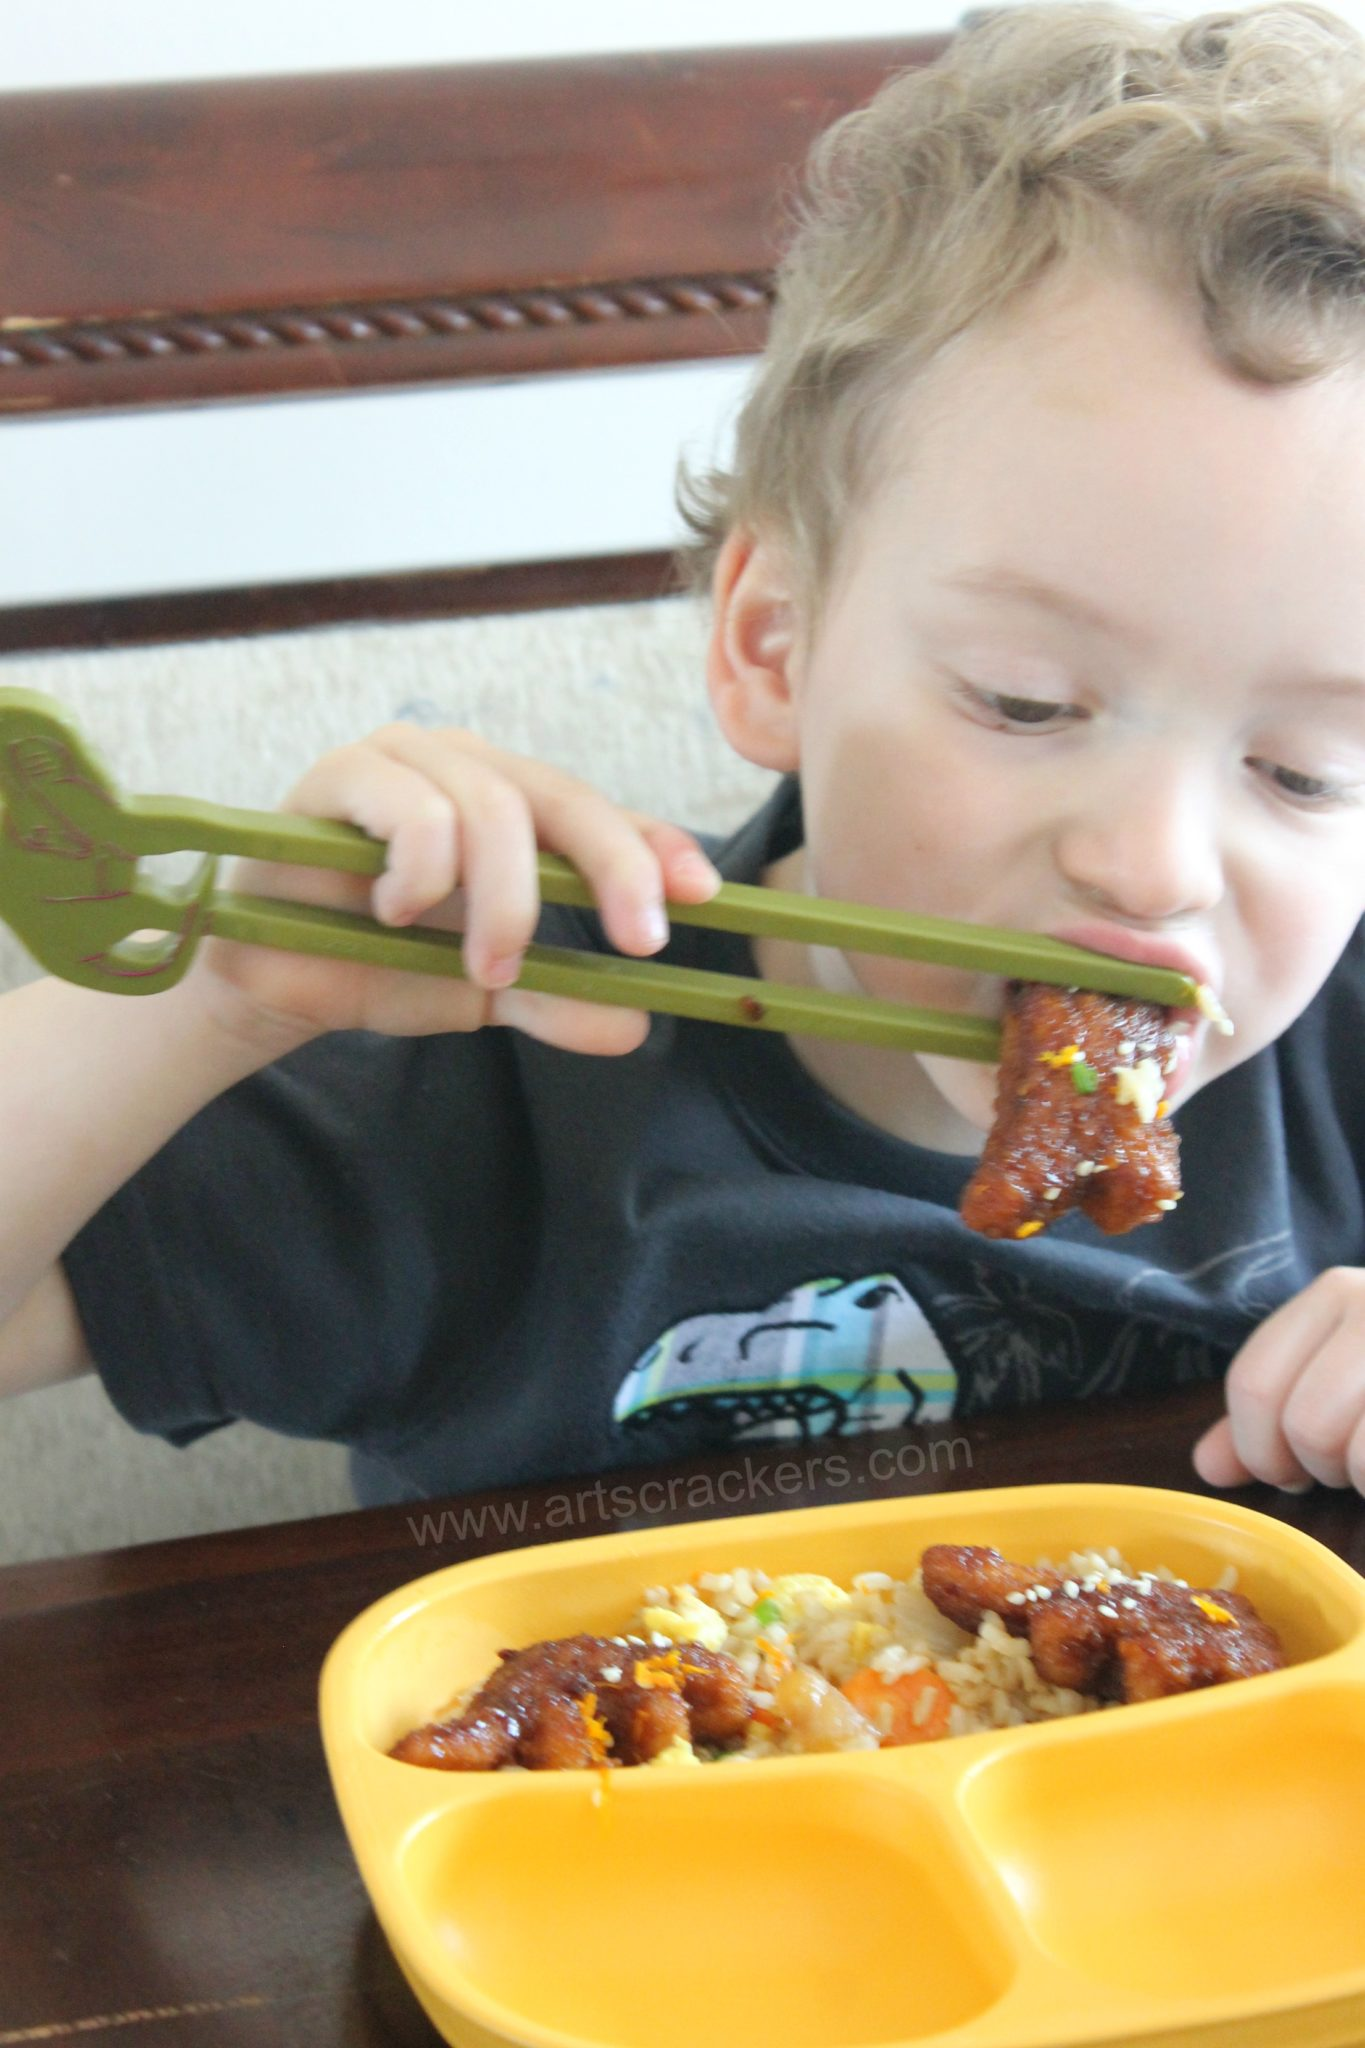 Eating With Training Chopsticks